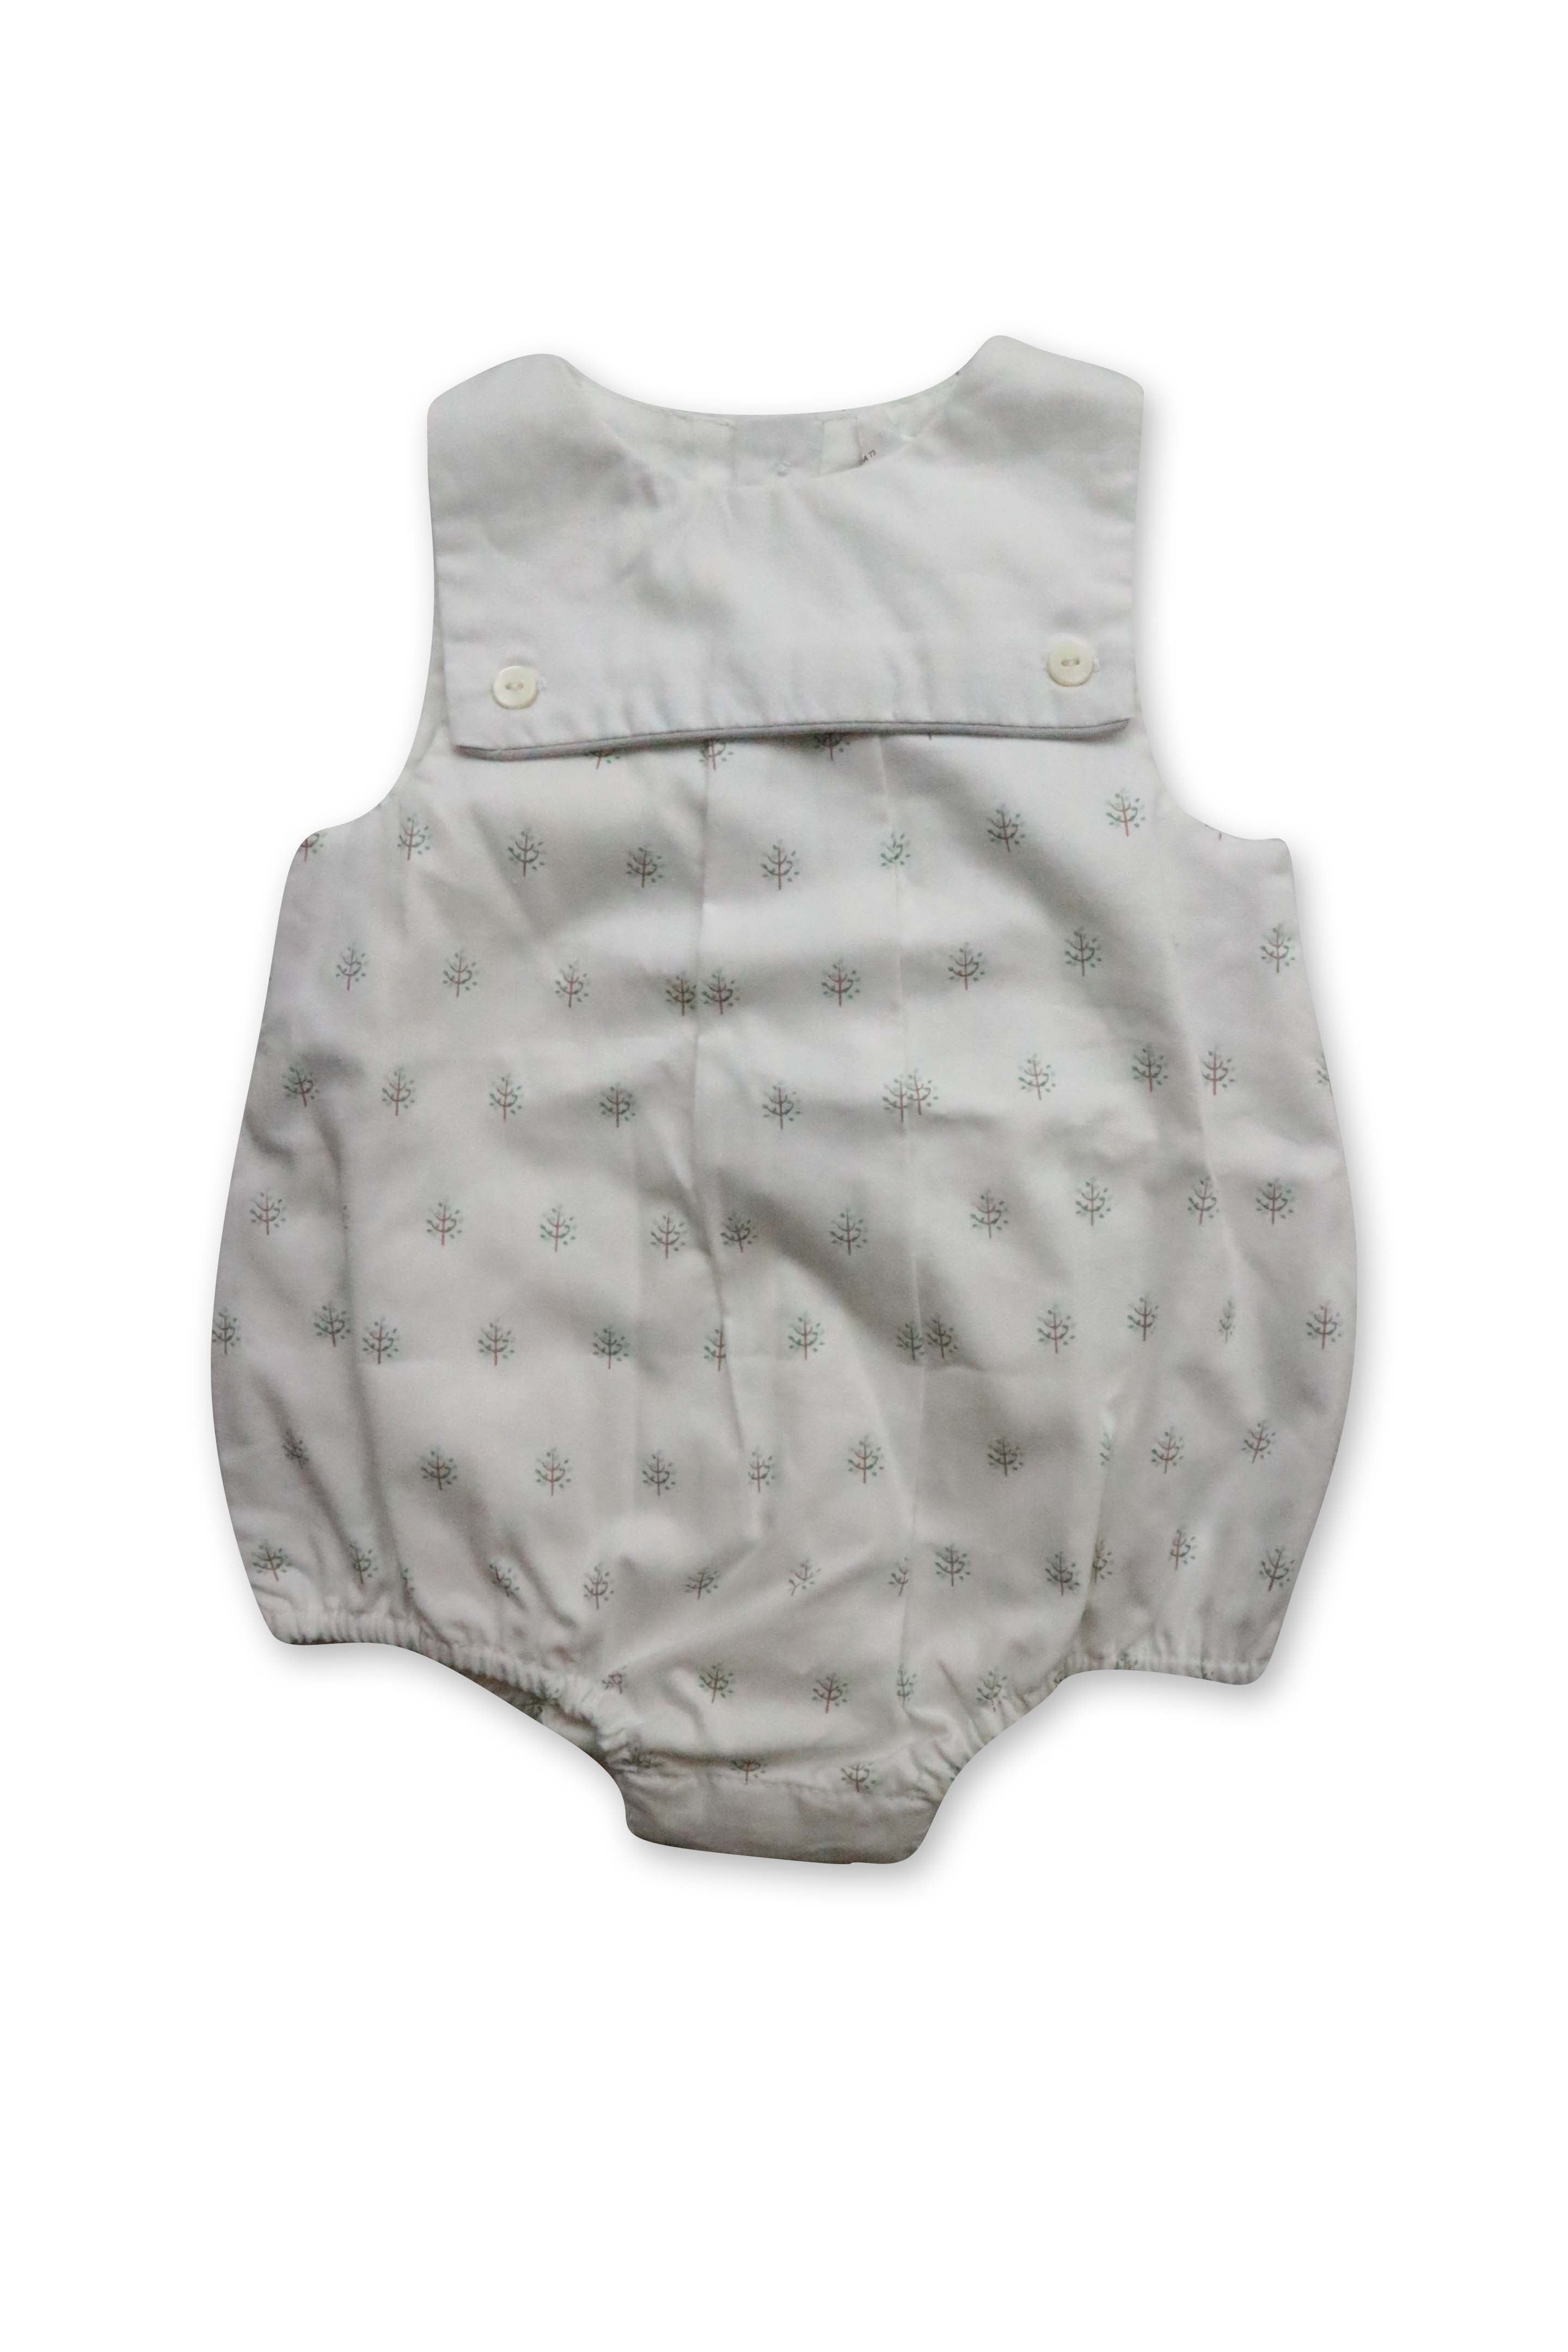 Jacadi Playsuit size 000 (0-3M)